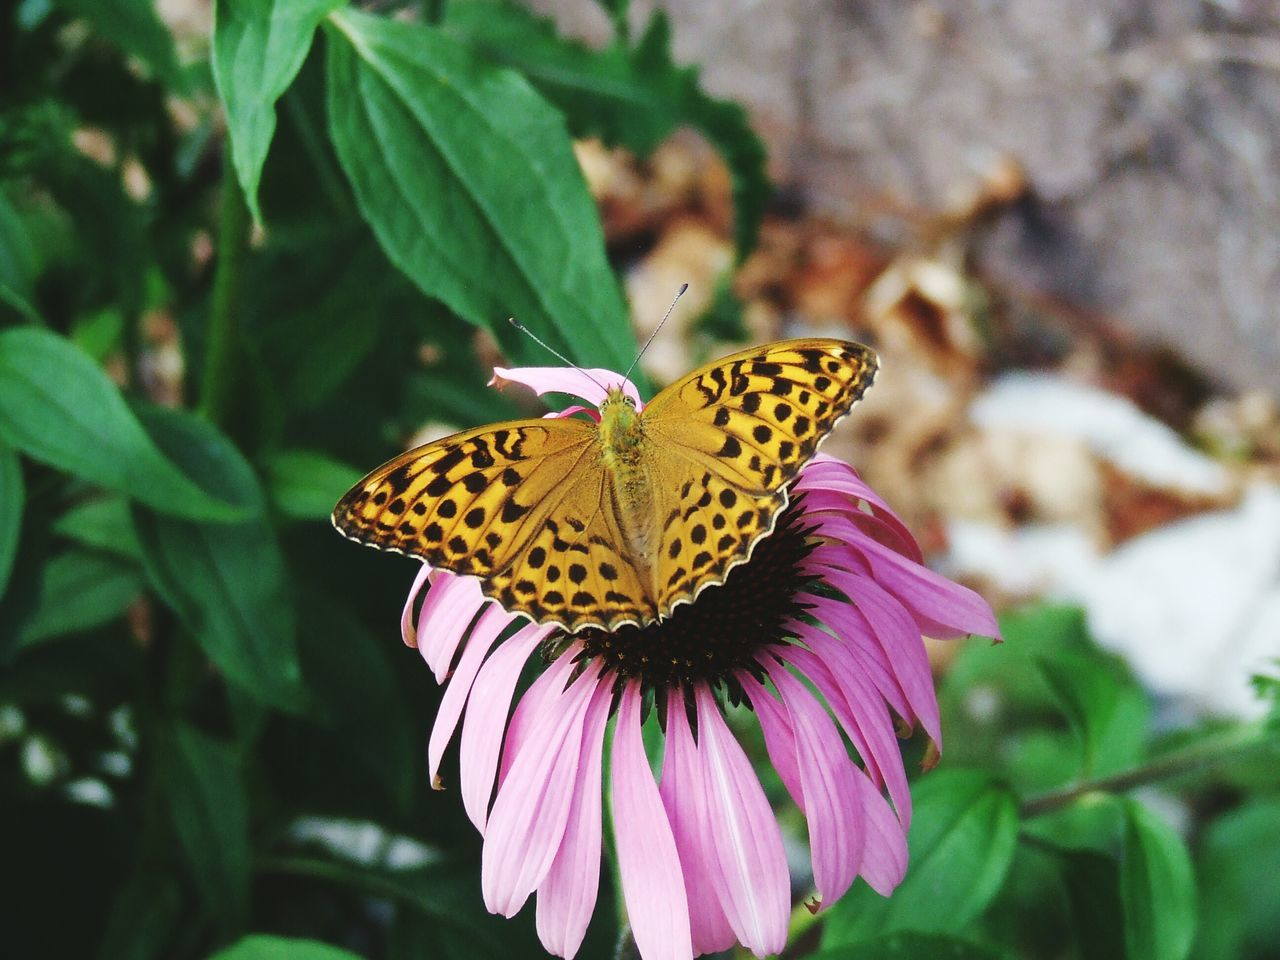 Close-Up Of Butterfly Pollinating On Coneflower